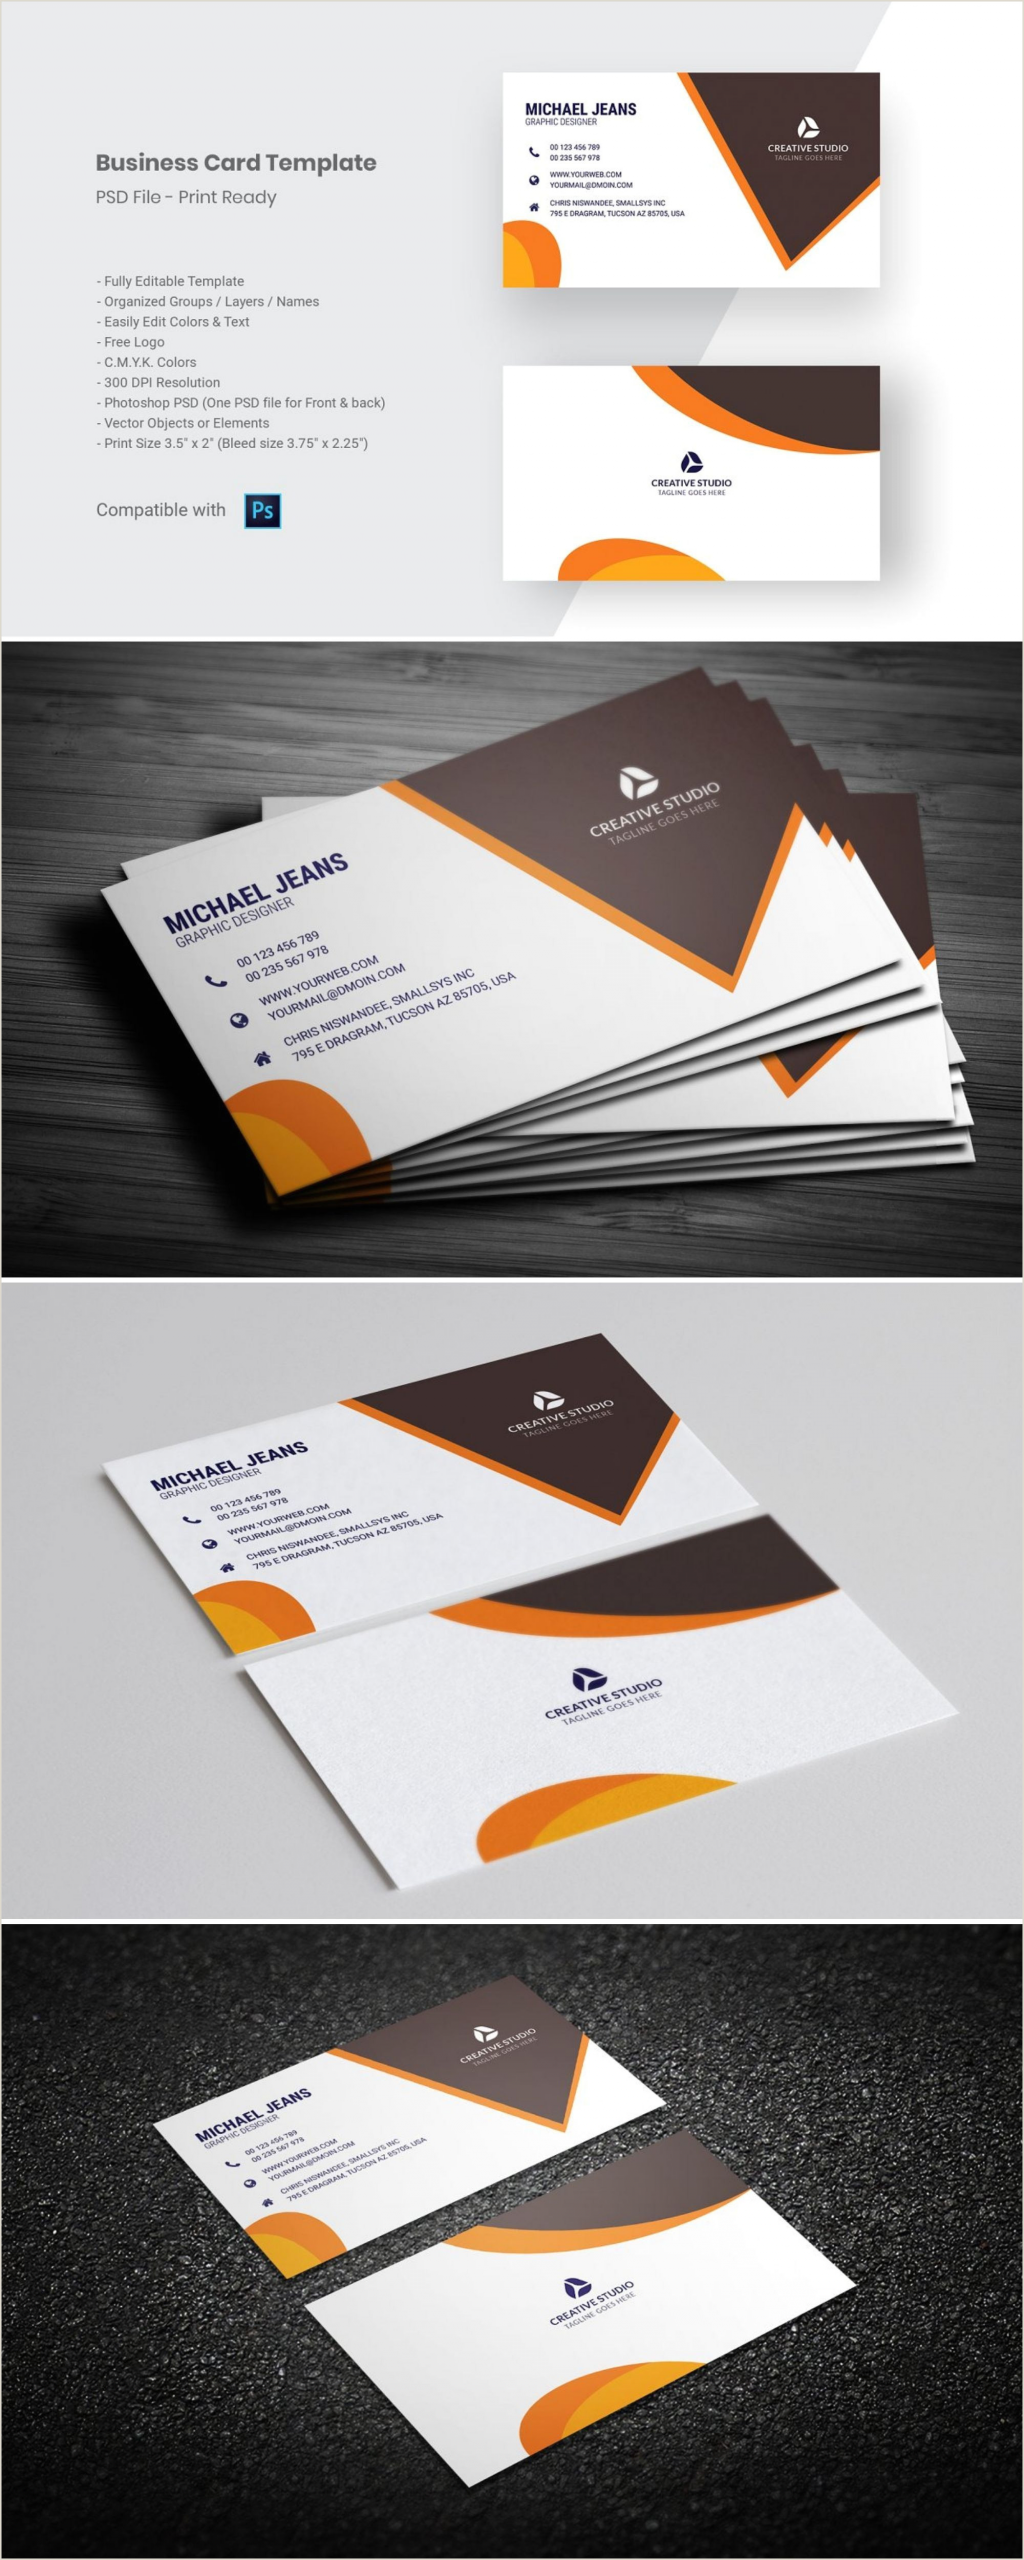 Professional Looking Business Cards Modern Business Card Template